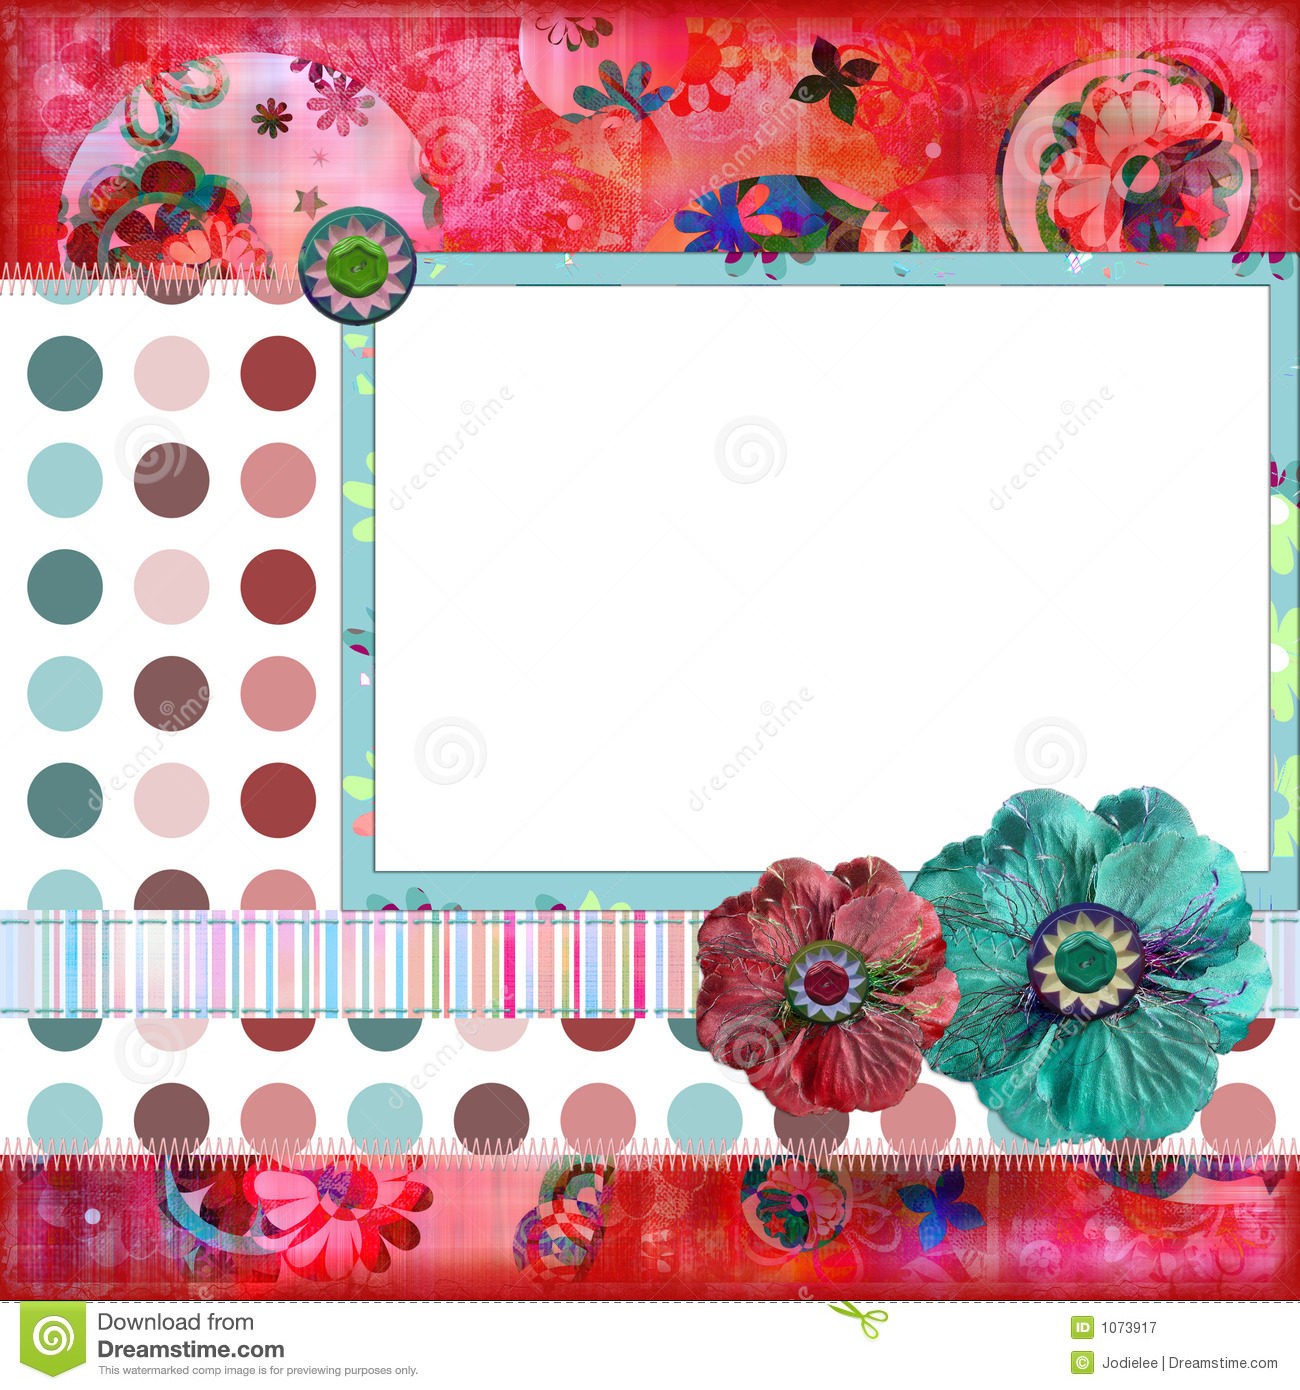 How to Make a Romantic Scrapbook